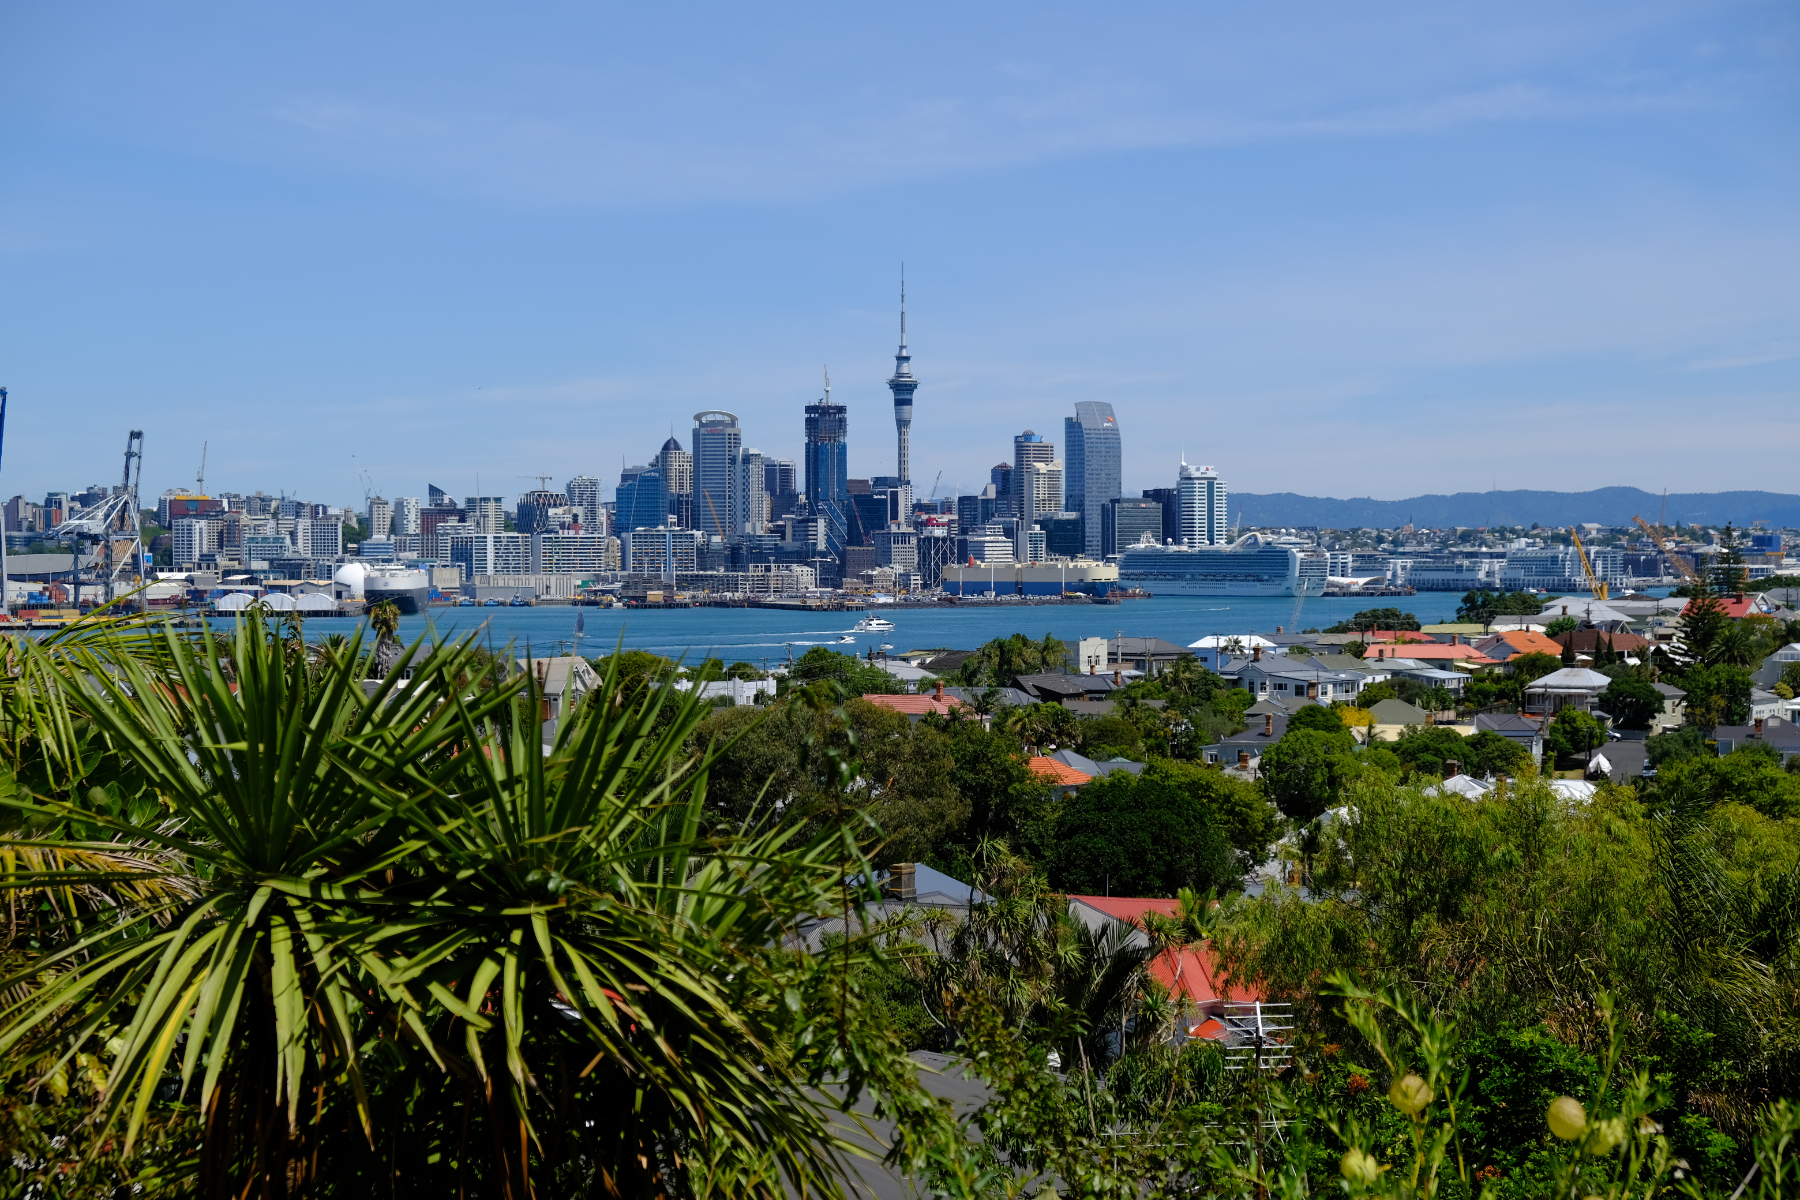 From Devenport to Auckland